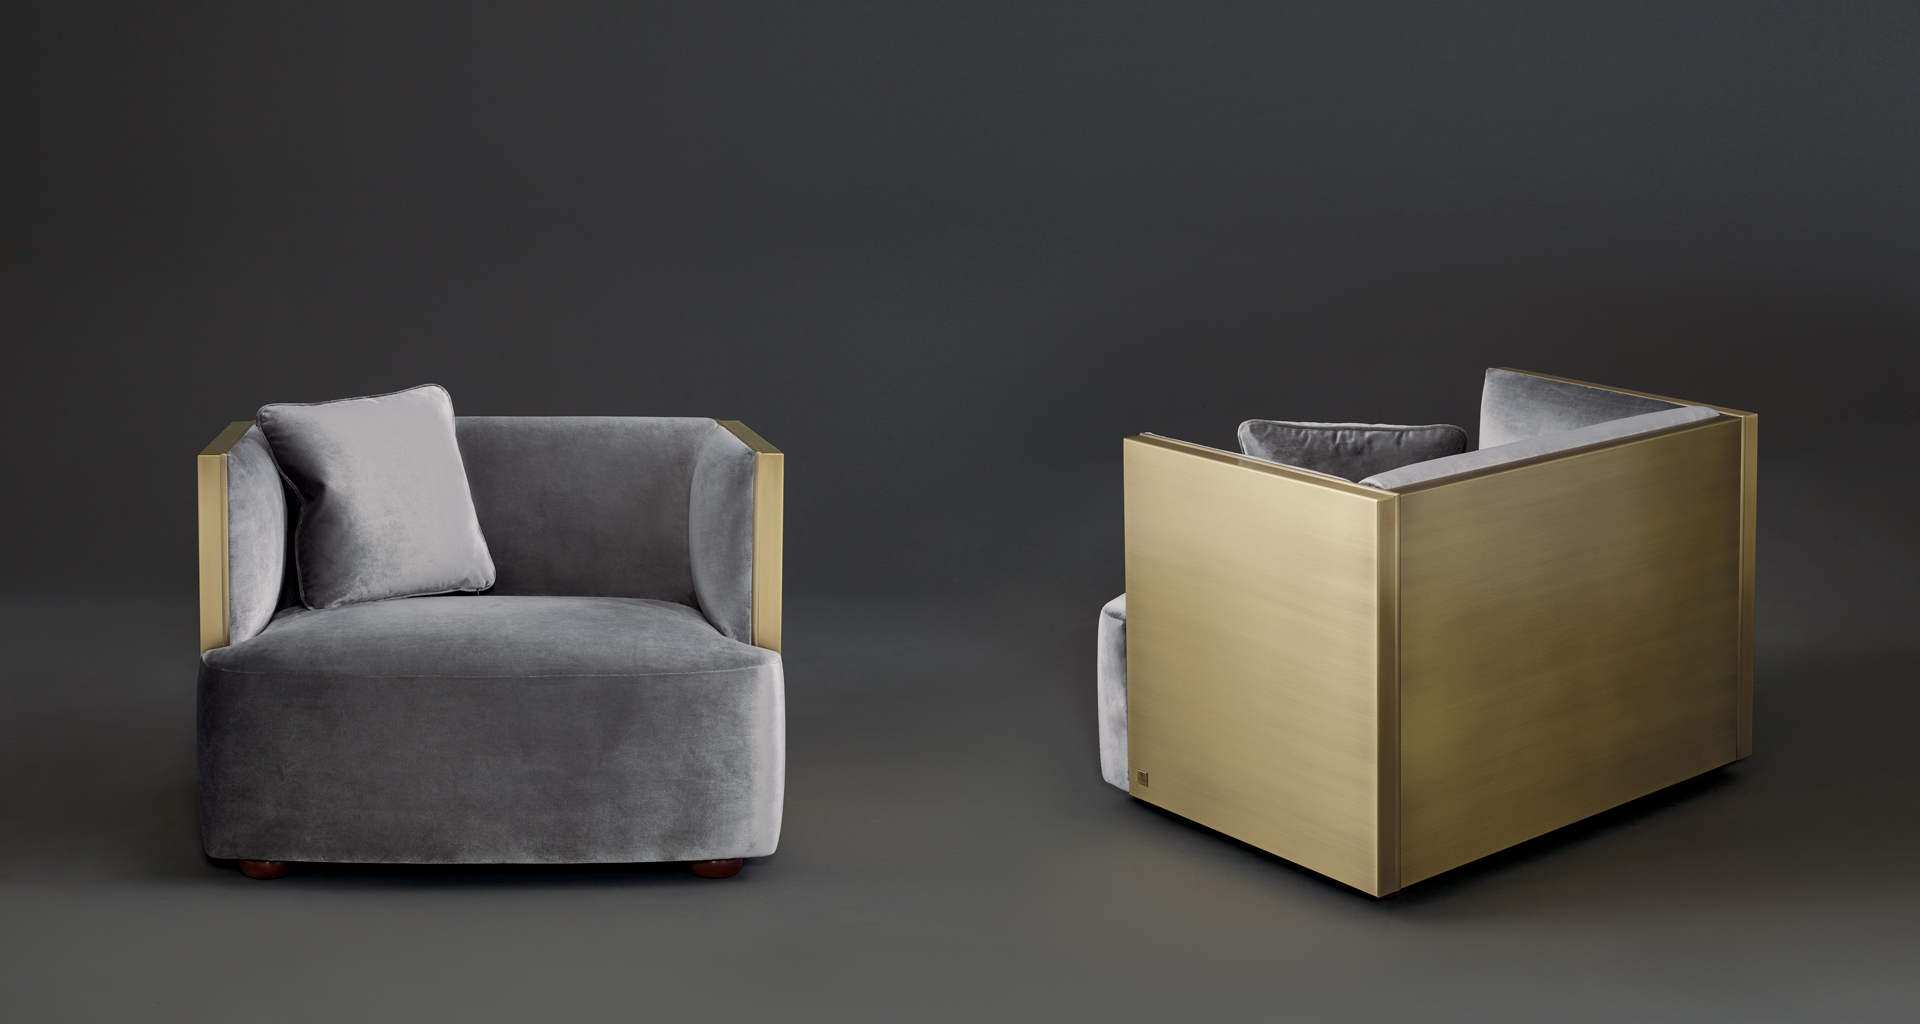 Bronze structure detail pf Boccaccio, a bronze armchair covered in fabric, from Promemoria's catalogue | Promemoria